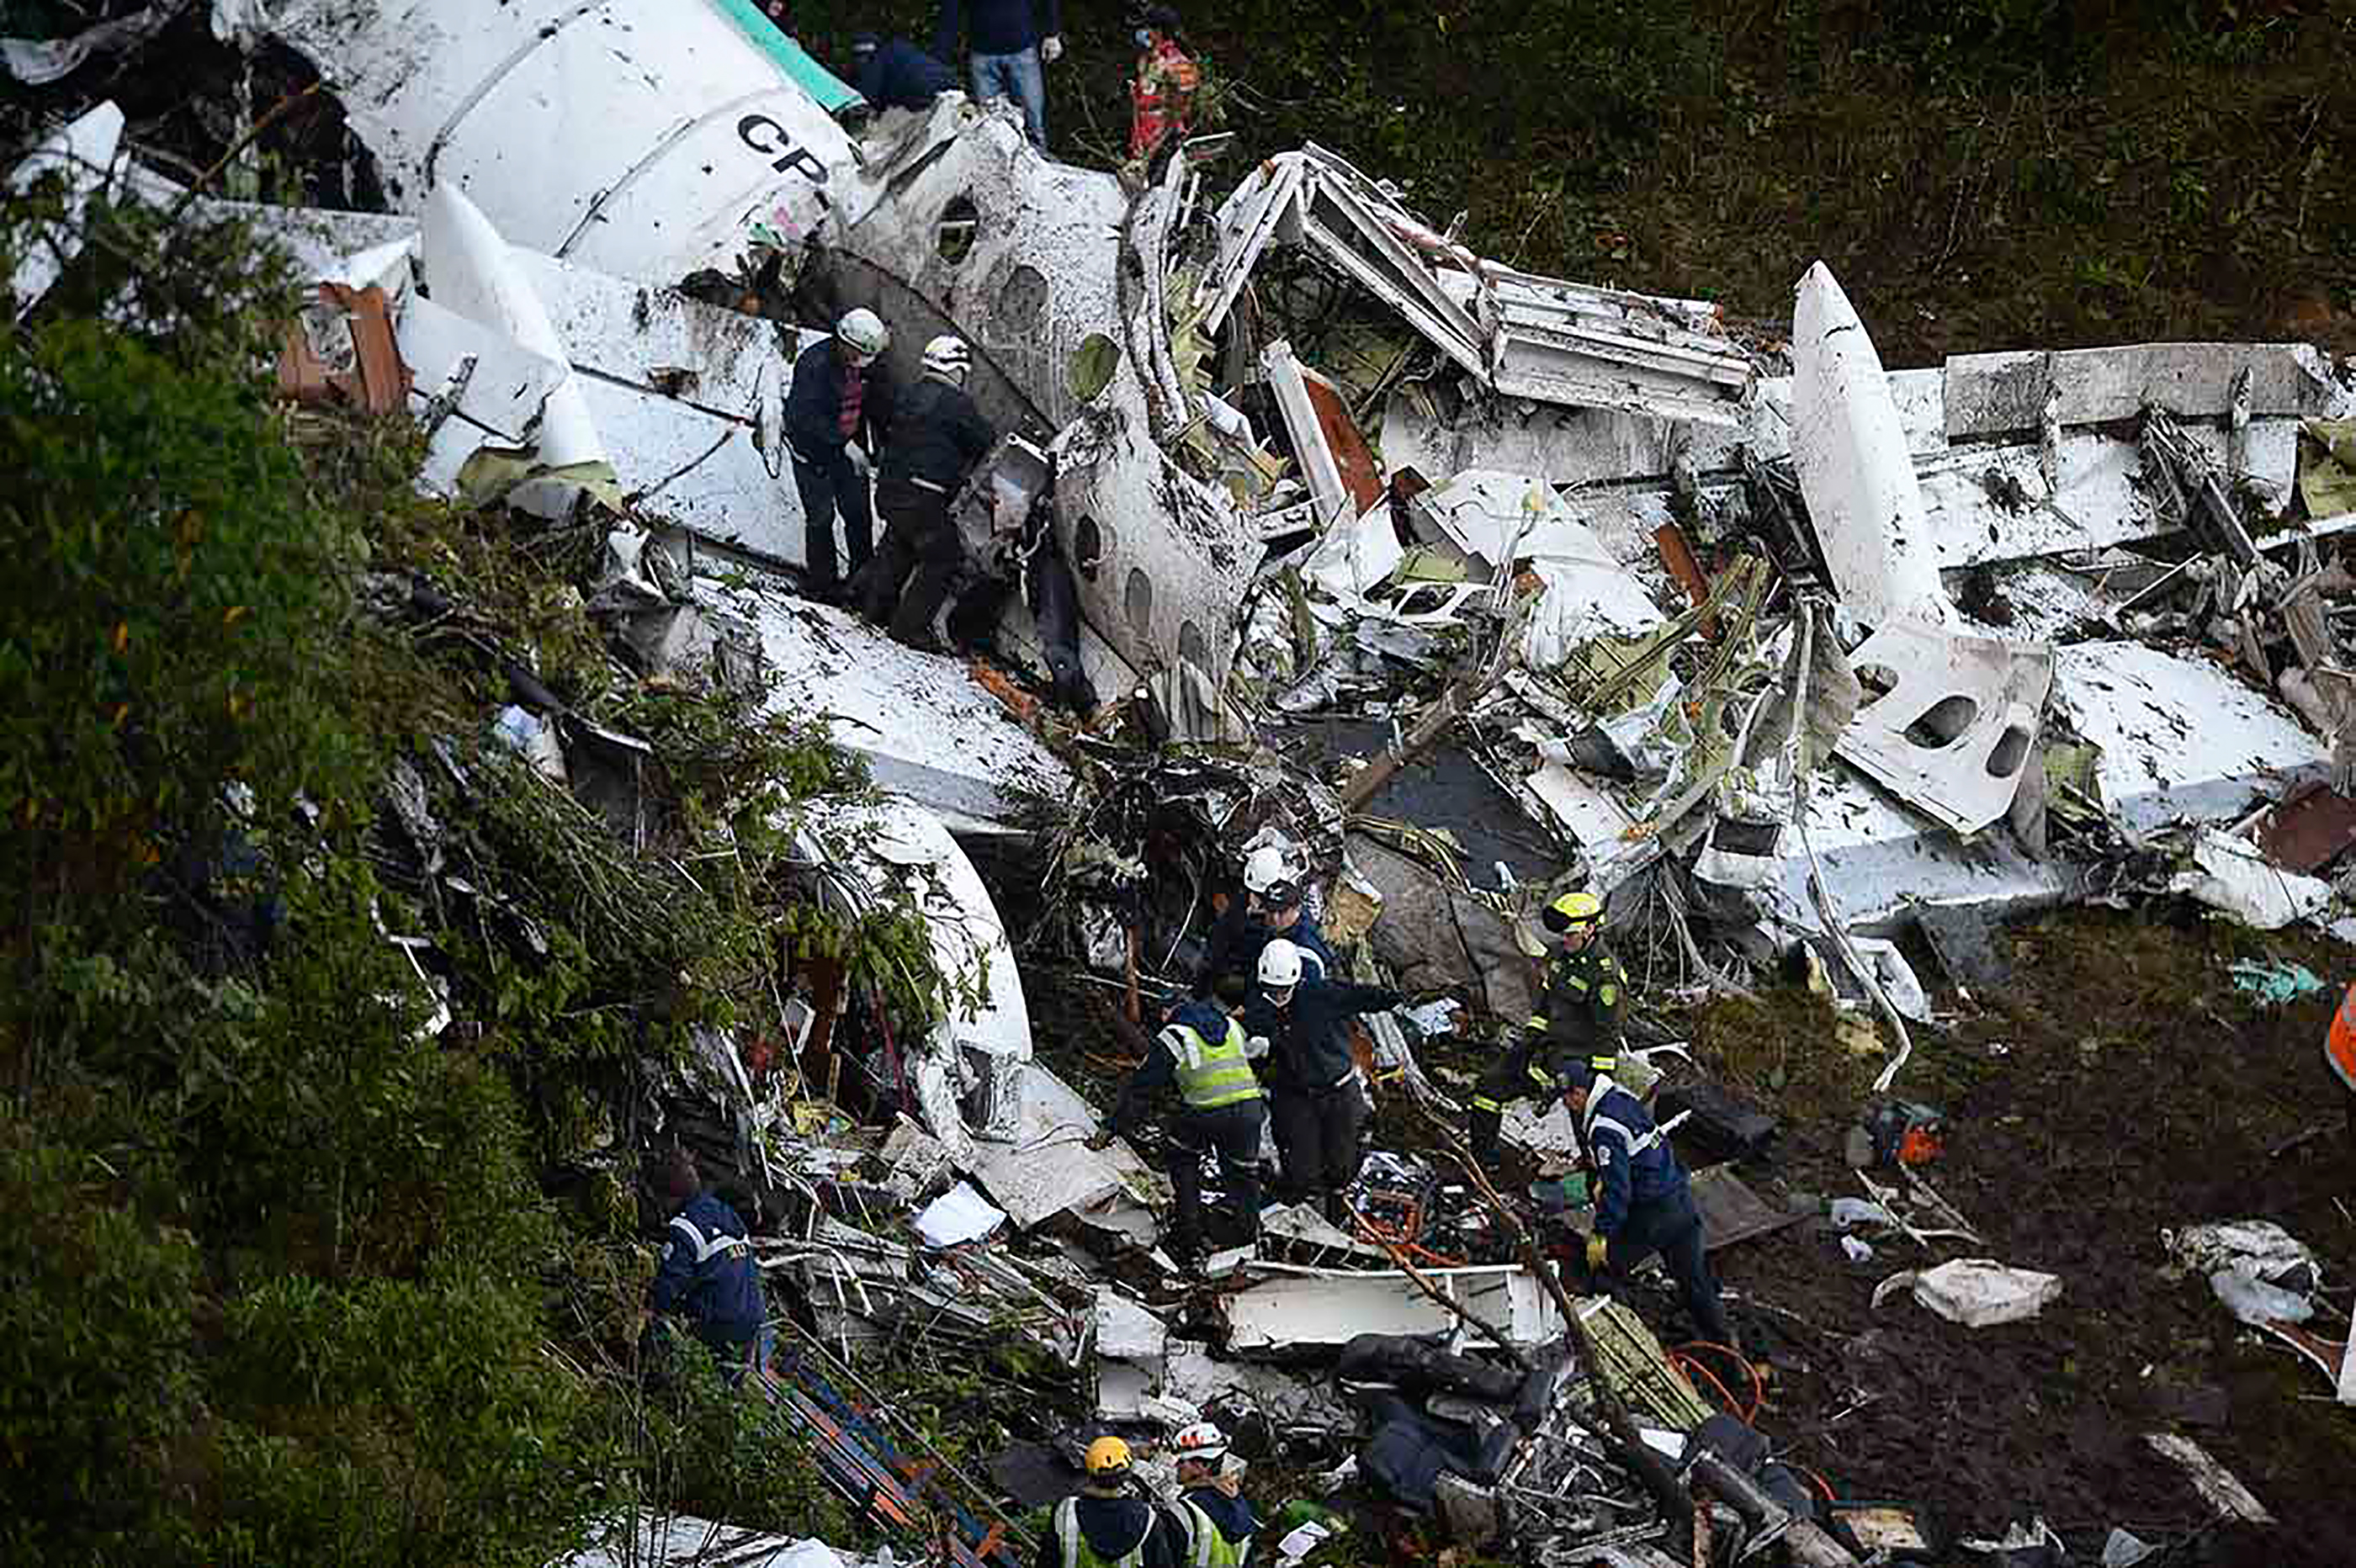 Rescuers search for survivors from the wreckage of the LAMIA plane carrying members of the Chapecoense Real soccer team that crashed in the mountains of Cerro Gordo, municipality of La Union, on Nov.29, 2016.